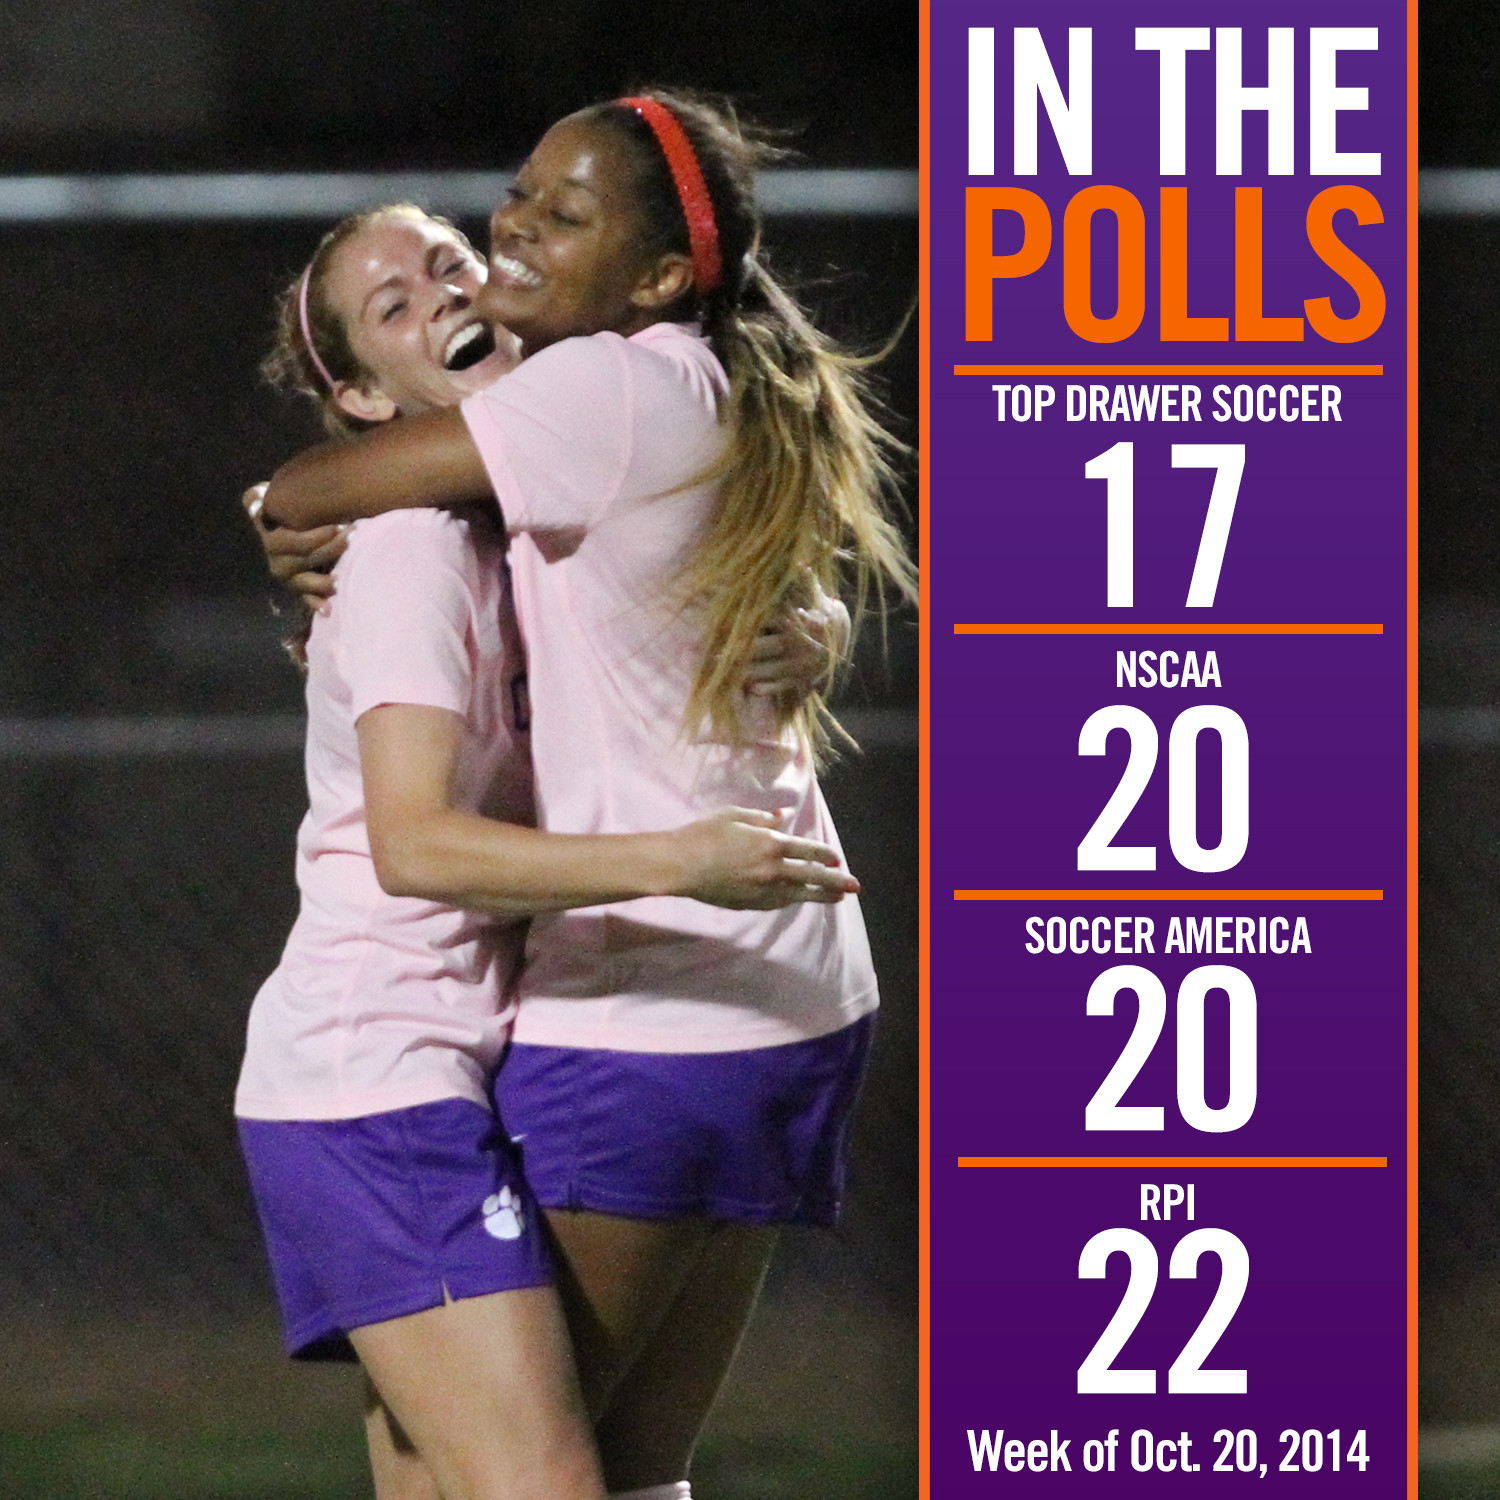 Tigers Ranked in all Three Polls, As High as 17th